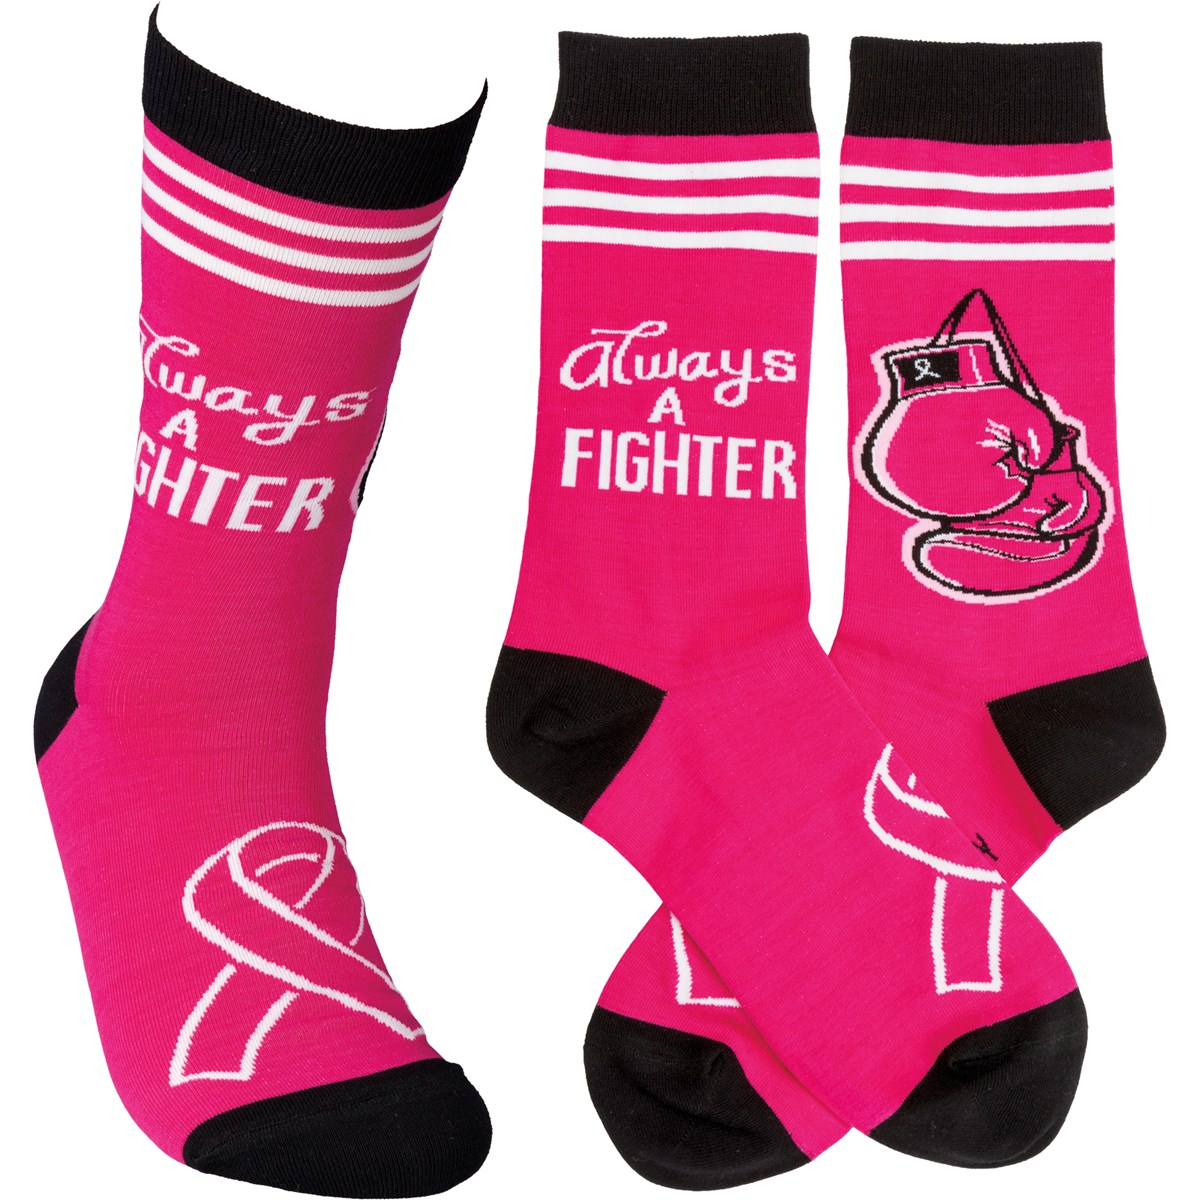 Socks - Always A Fighter - One Size Fits Most - Cotton, Nylon, Spandex